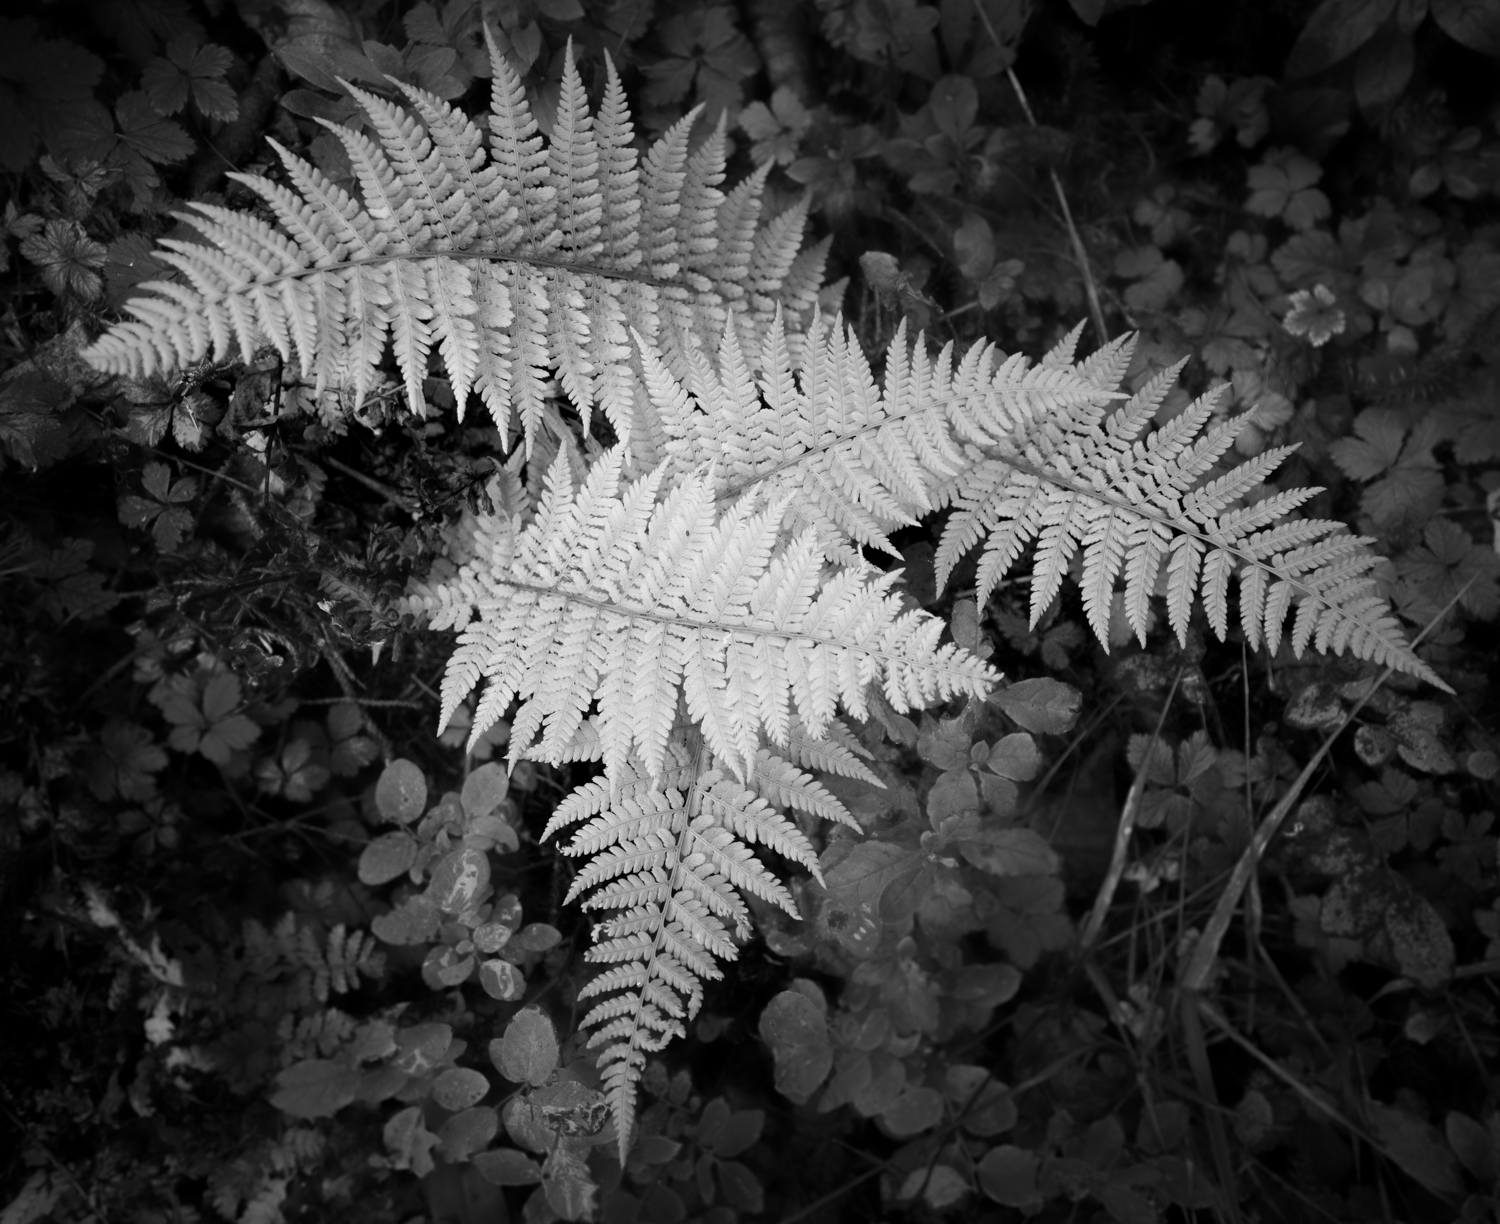 8 - Black and White in the Outdoors